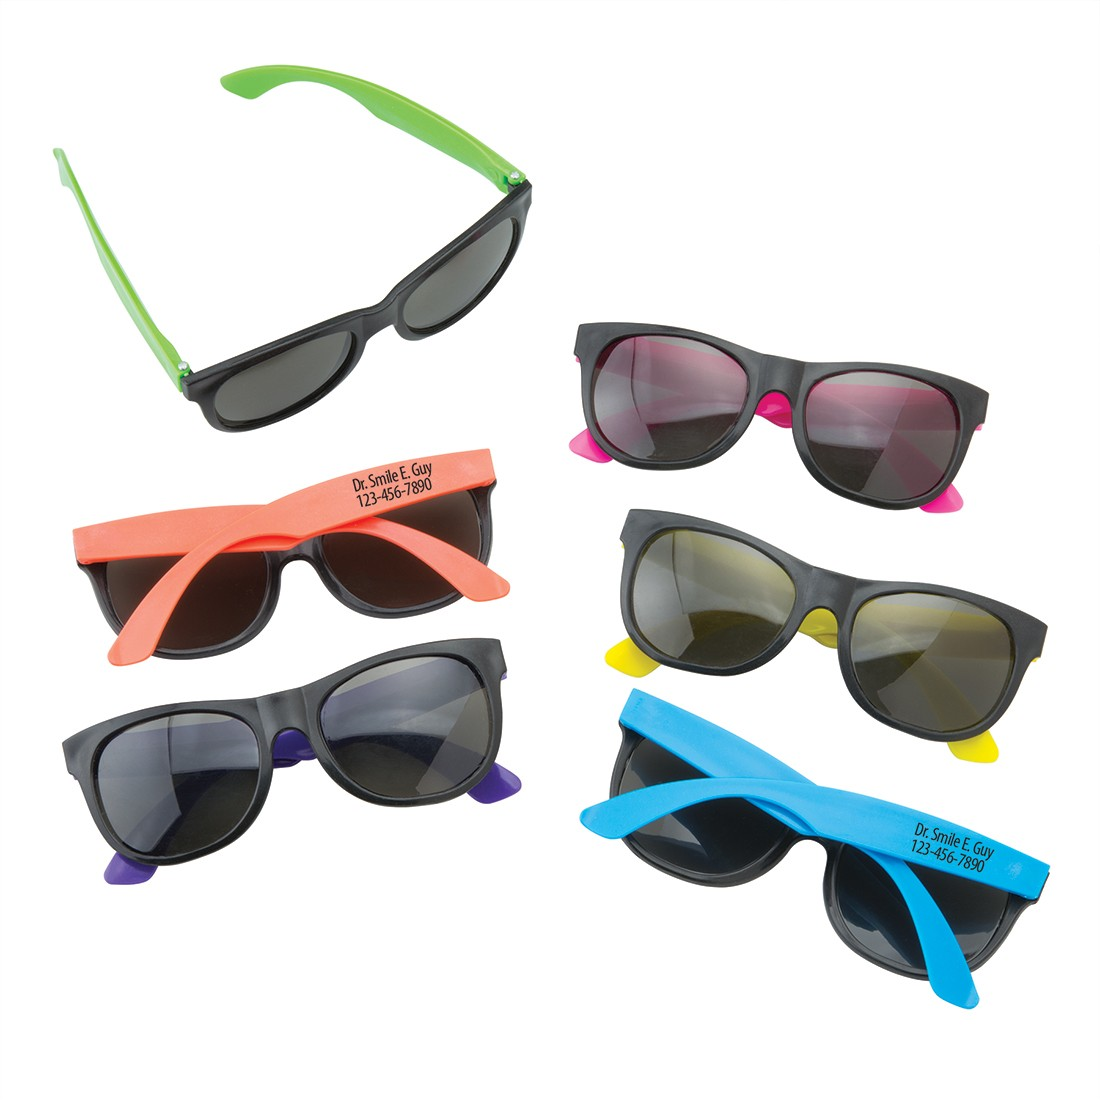 Custom Neon Shades [image]